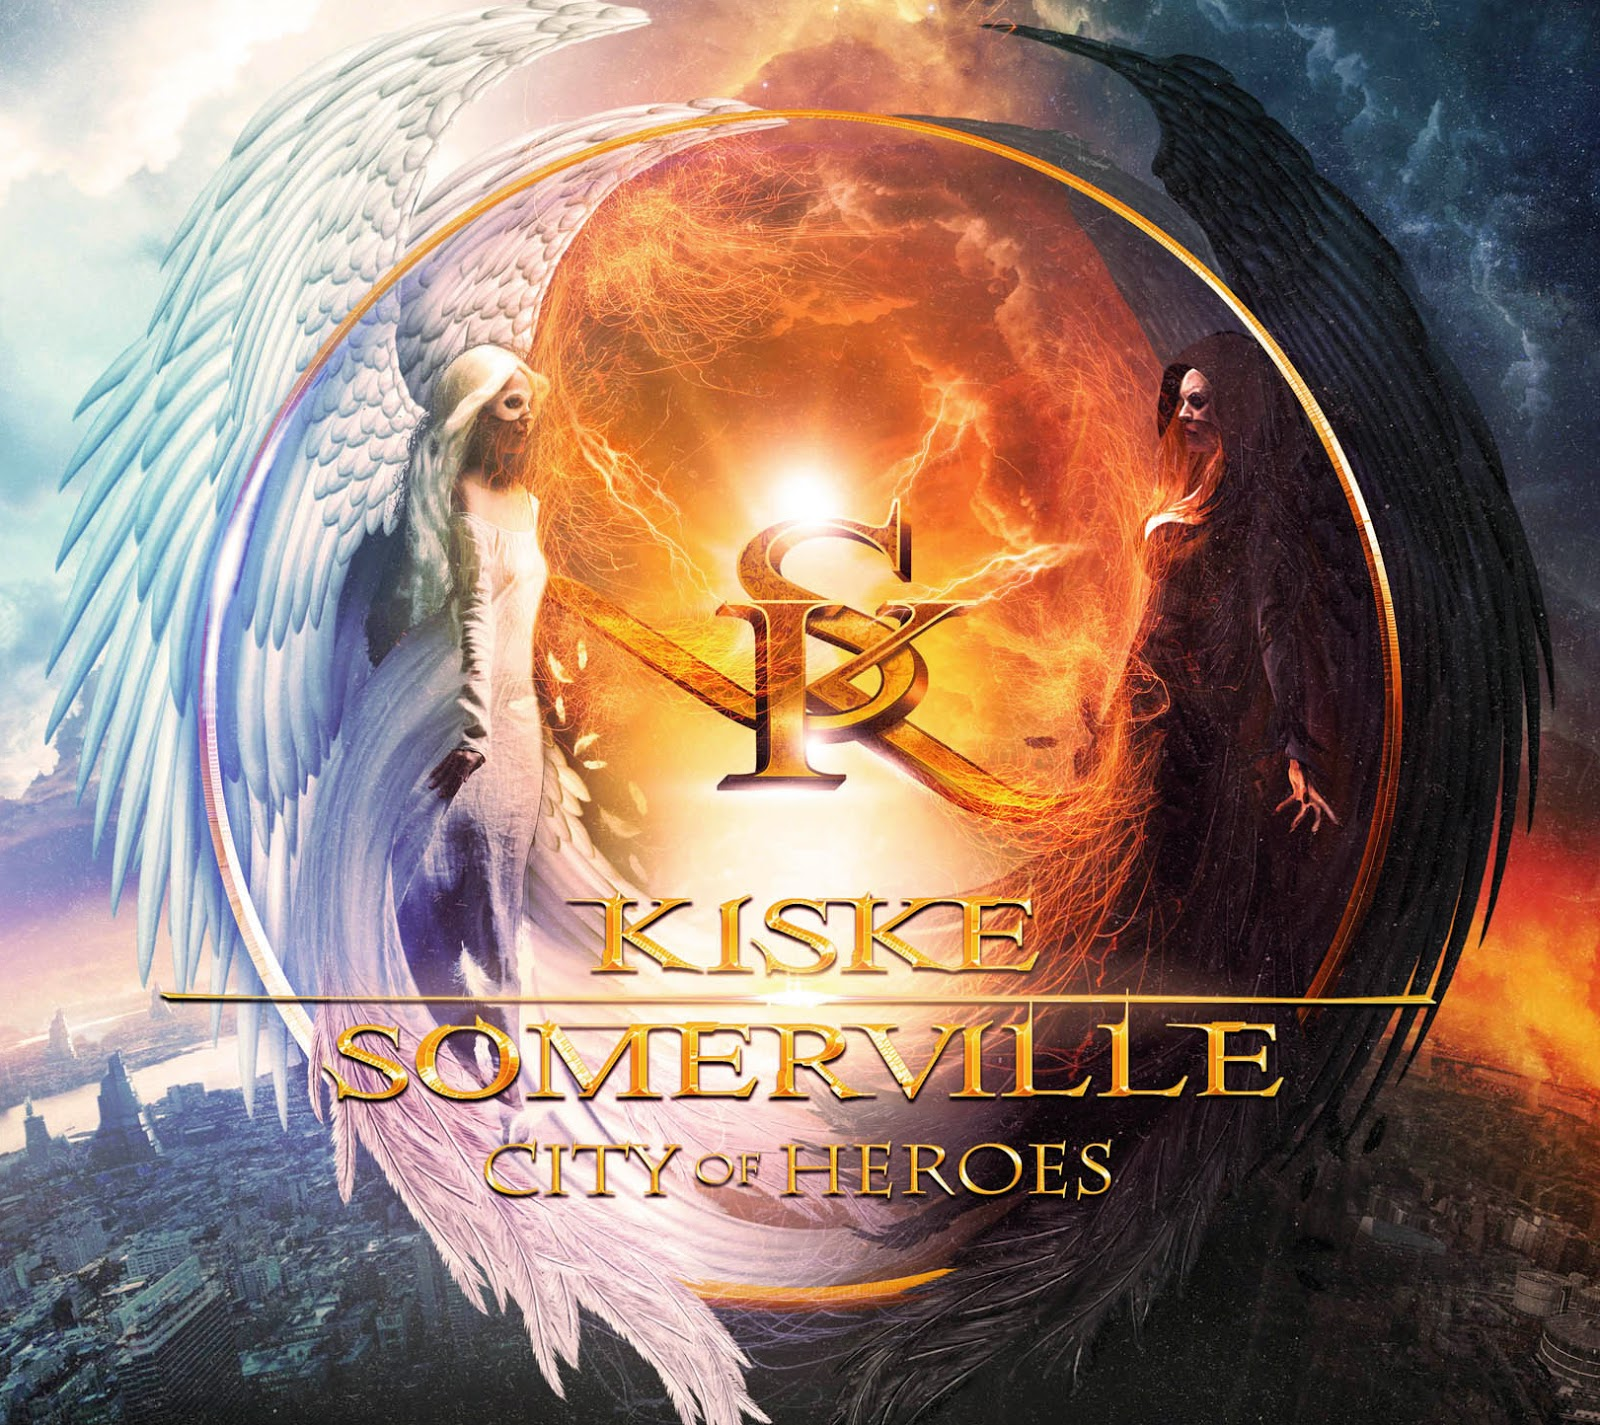 http://rock-and-metal-4-you.blogspot.de/2015/03/cd-review-kiskesomerville-city-of-heroes.html